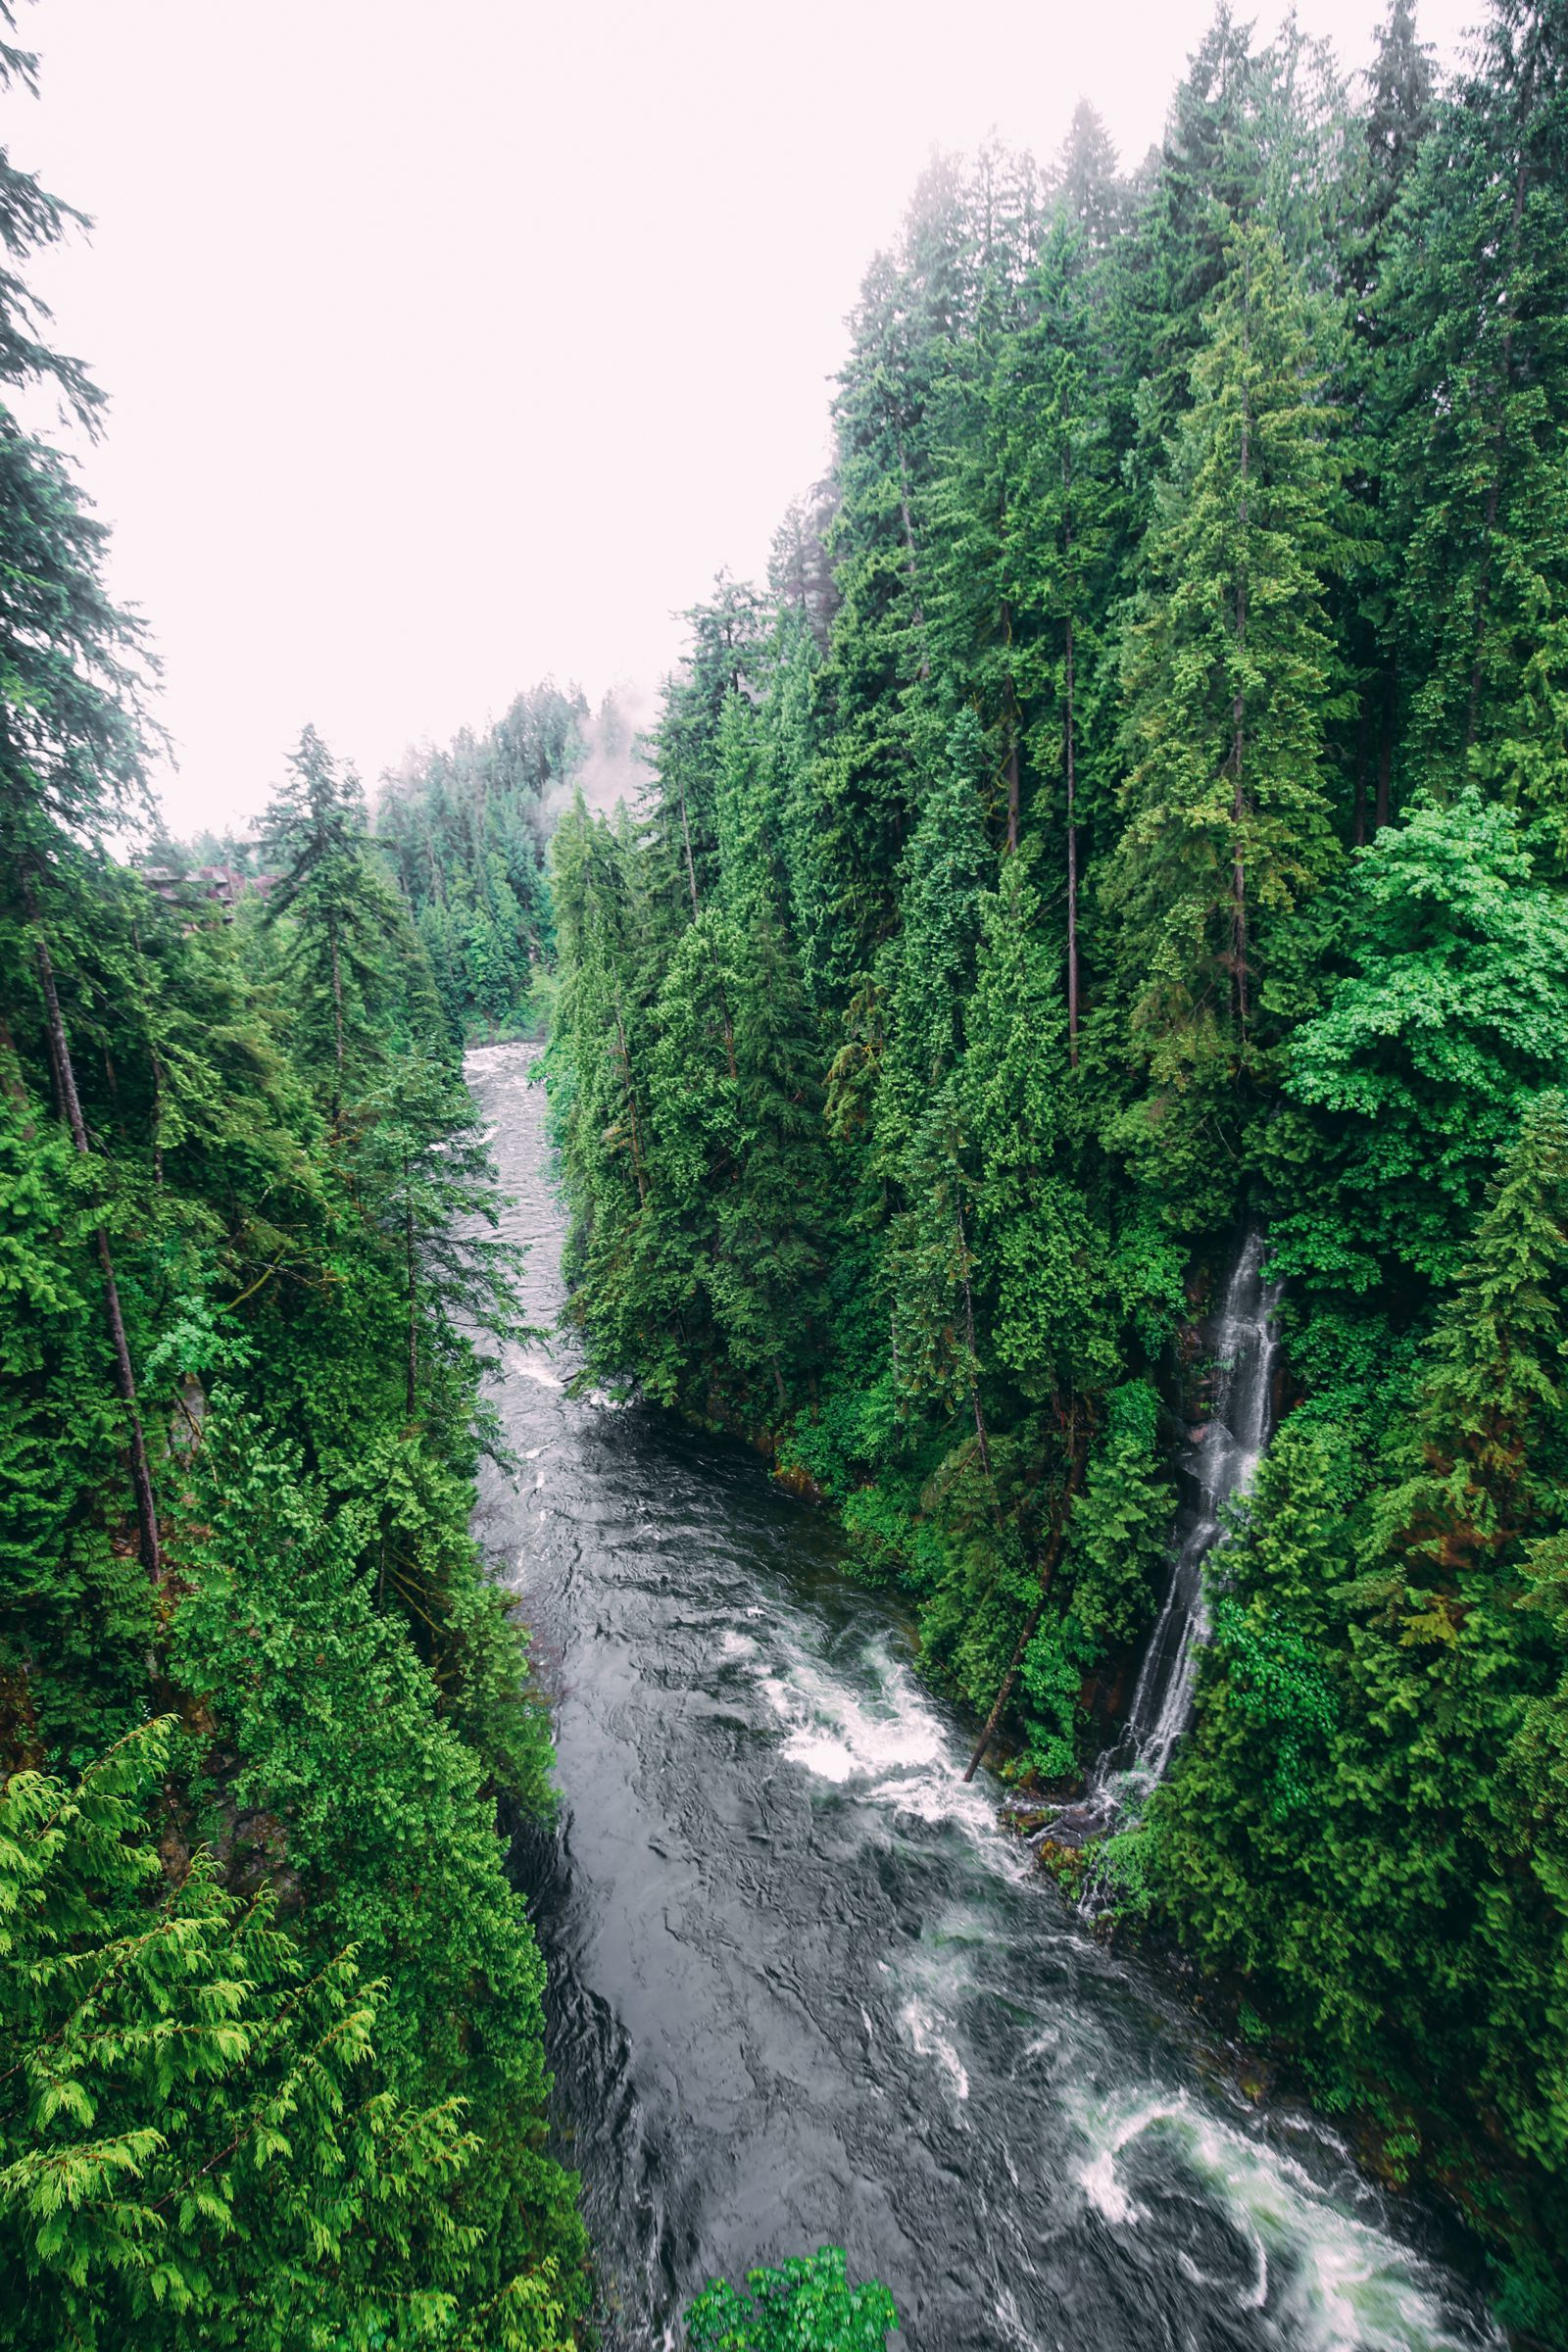 Photos And Postcards From Vancouver, Whistler, Squamish And The Sunshine Coast... In British Columbia, Canada (1)